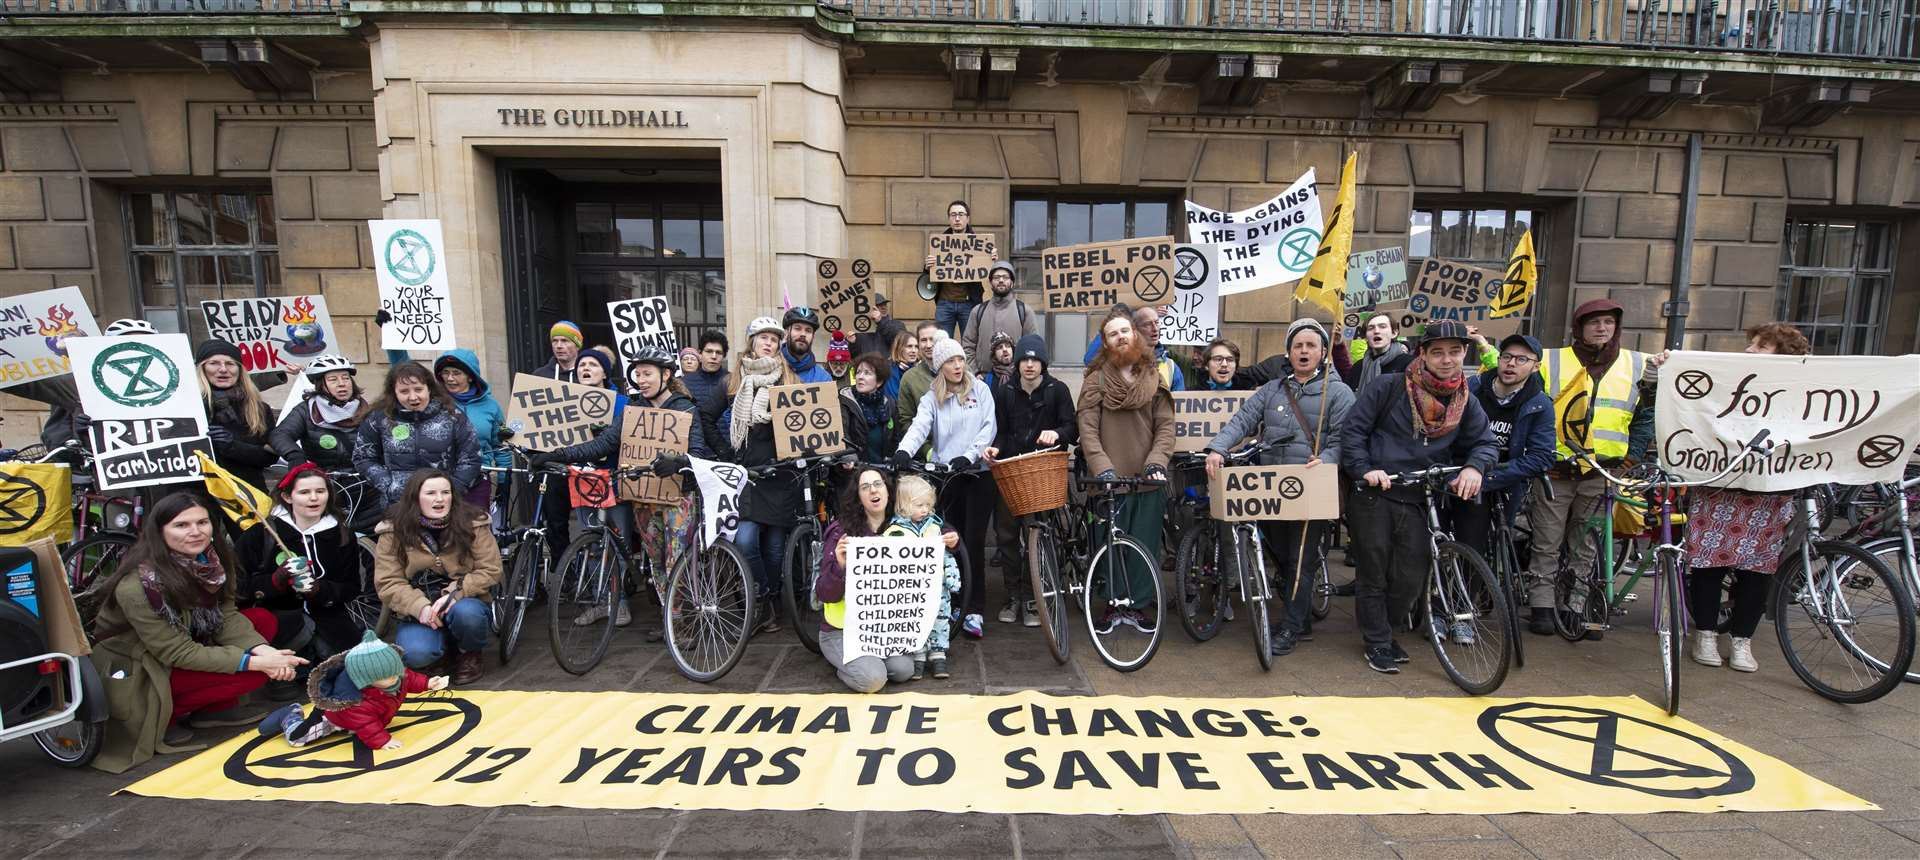 Extinction Rebellion action - critical mass bike ride through Cambridge, seen here as they arrived at the Guildhall. Picture: Keith Heppell. (9816059)